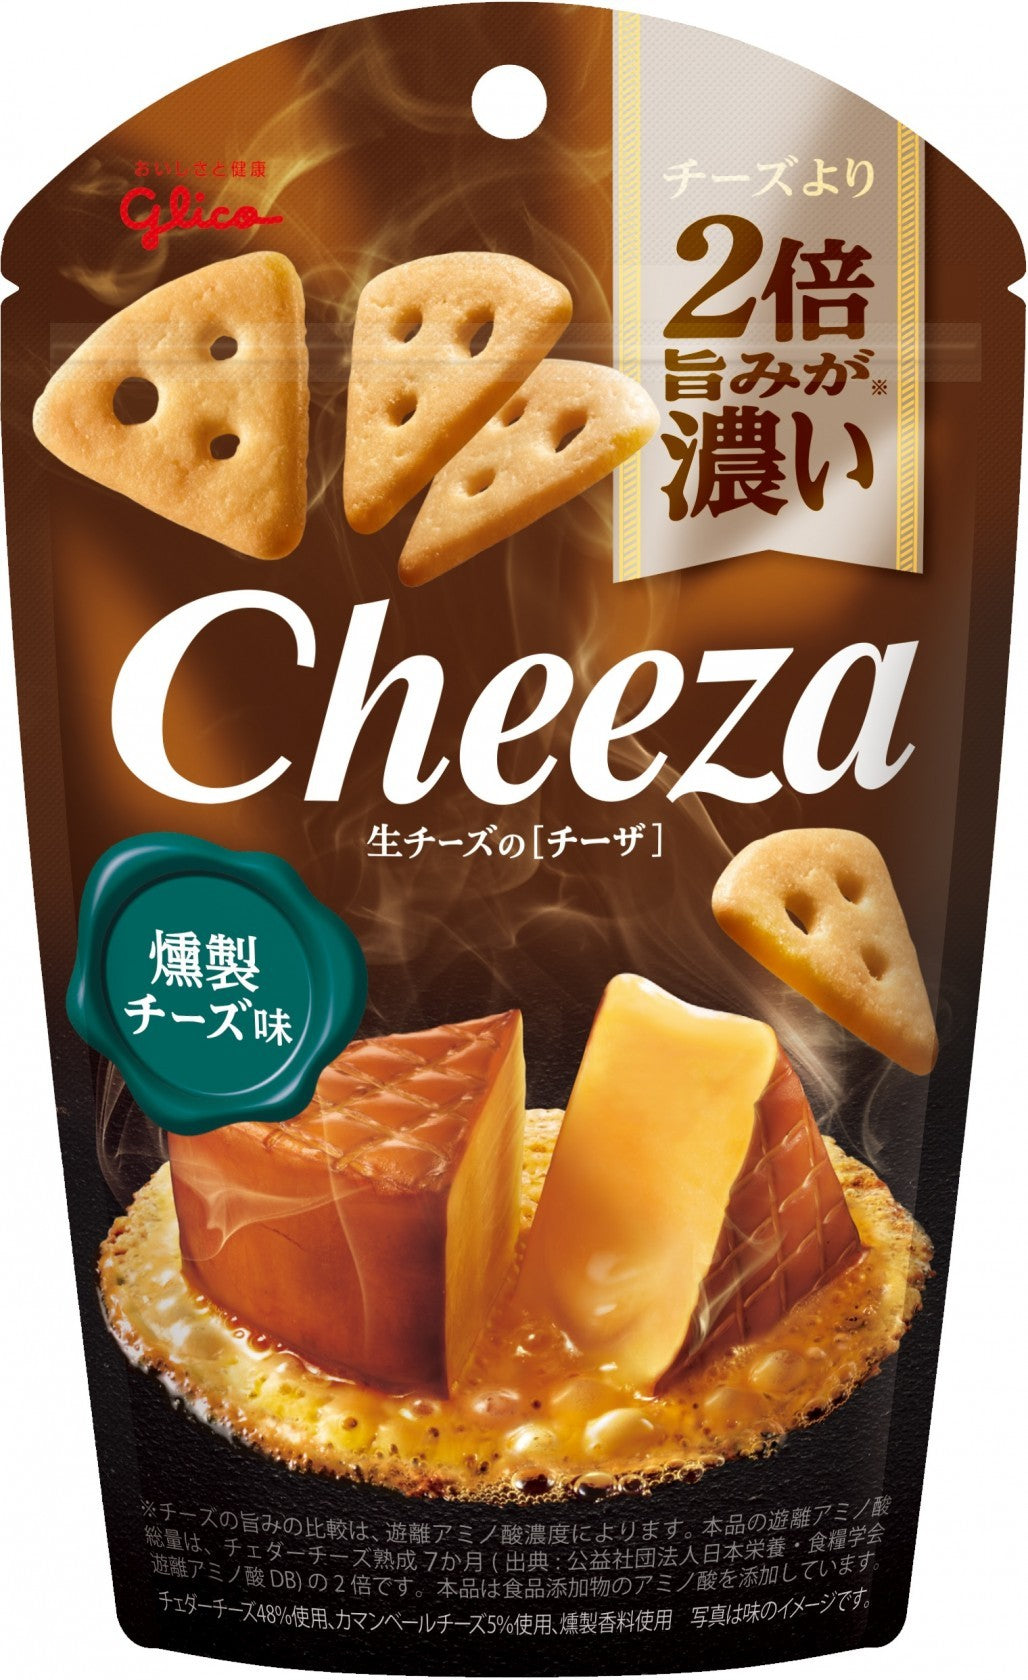 Glico - Cheeza Smoked Cheese